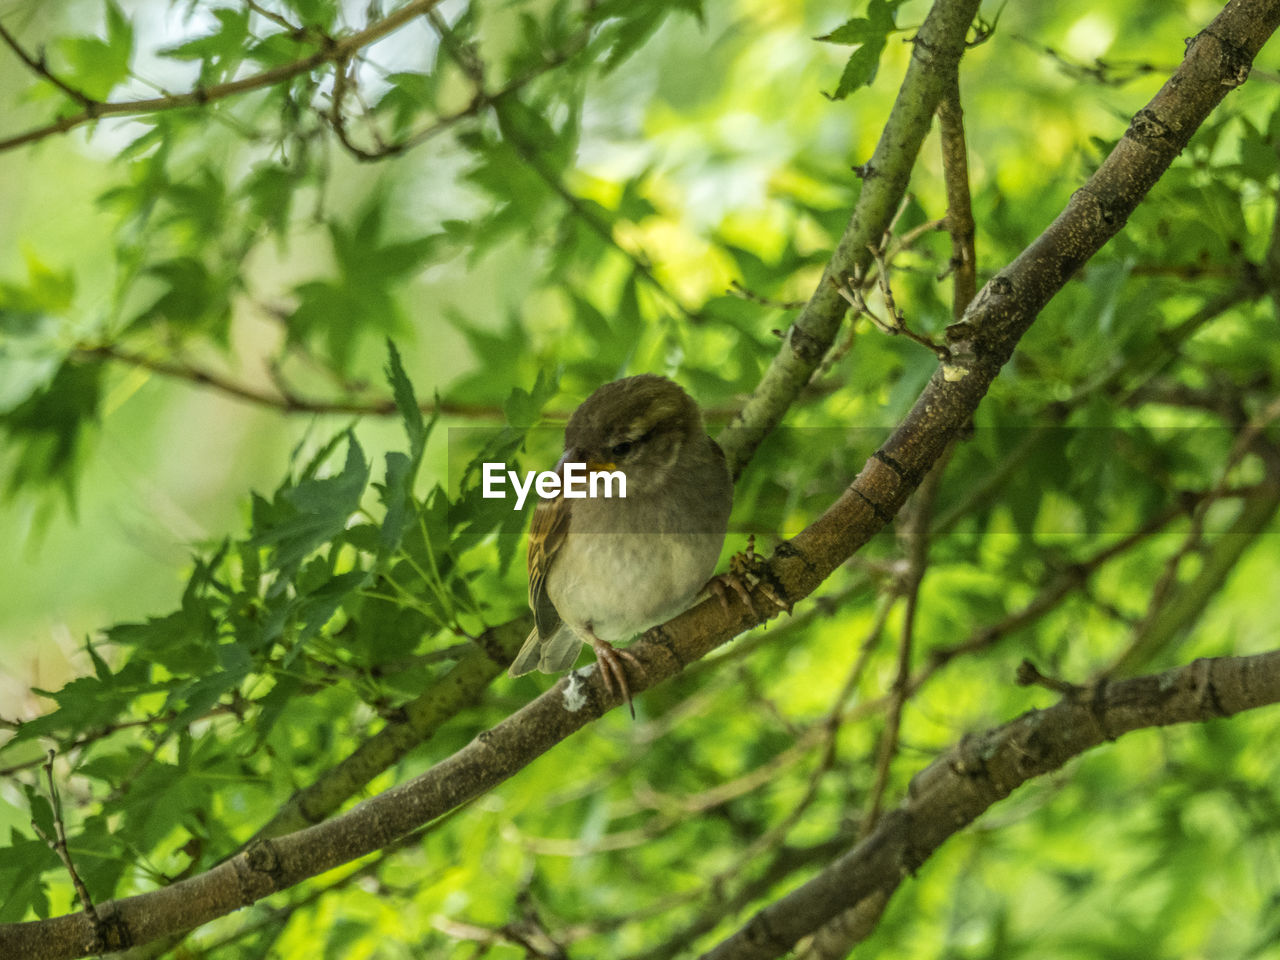 animal themes, animal, vertebrate, one animal, animal wildlife, animals in the wild, branch, perching, bird, plant, tree, nature, day, green color, no people, focus on foreground, plant part, selective focus, leaf, outdoors